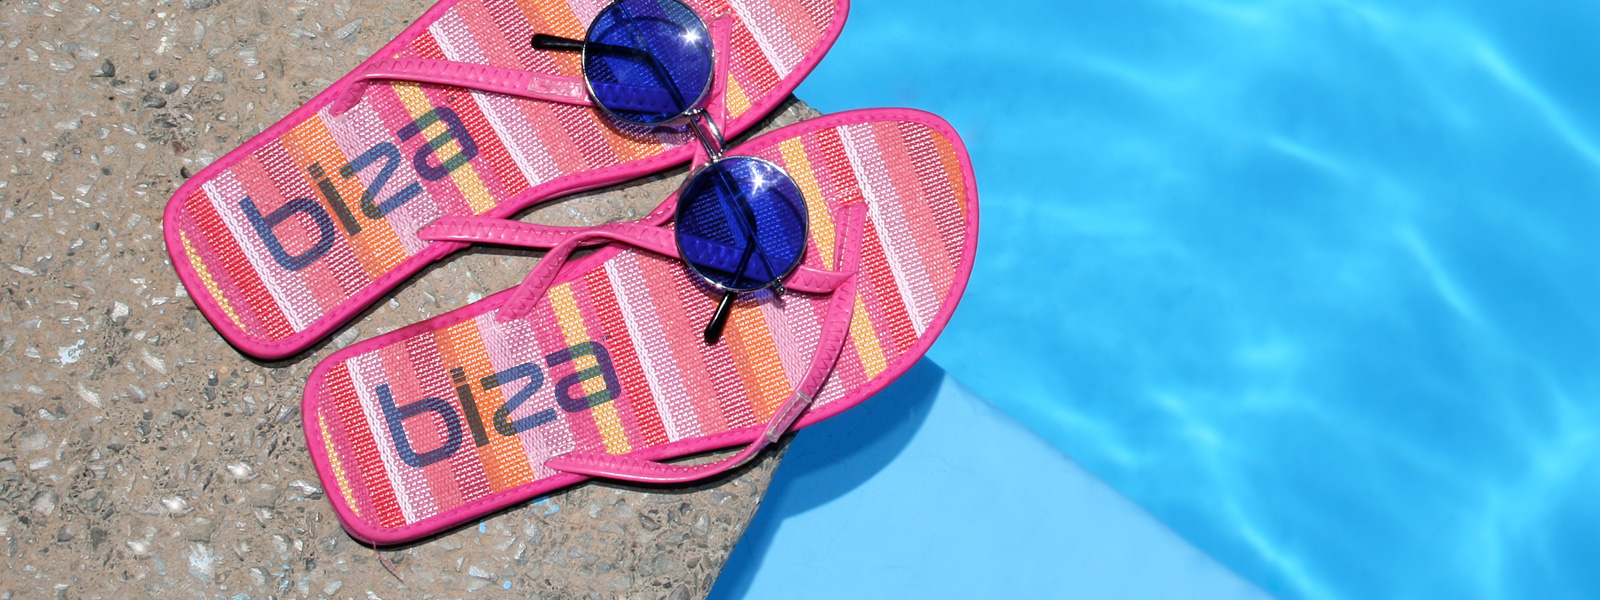 Sandals with the Biza logo on them next to a pool.